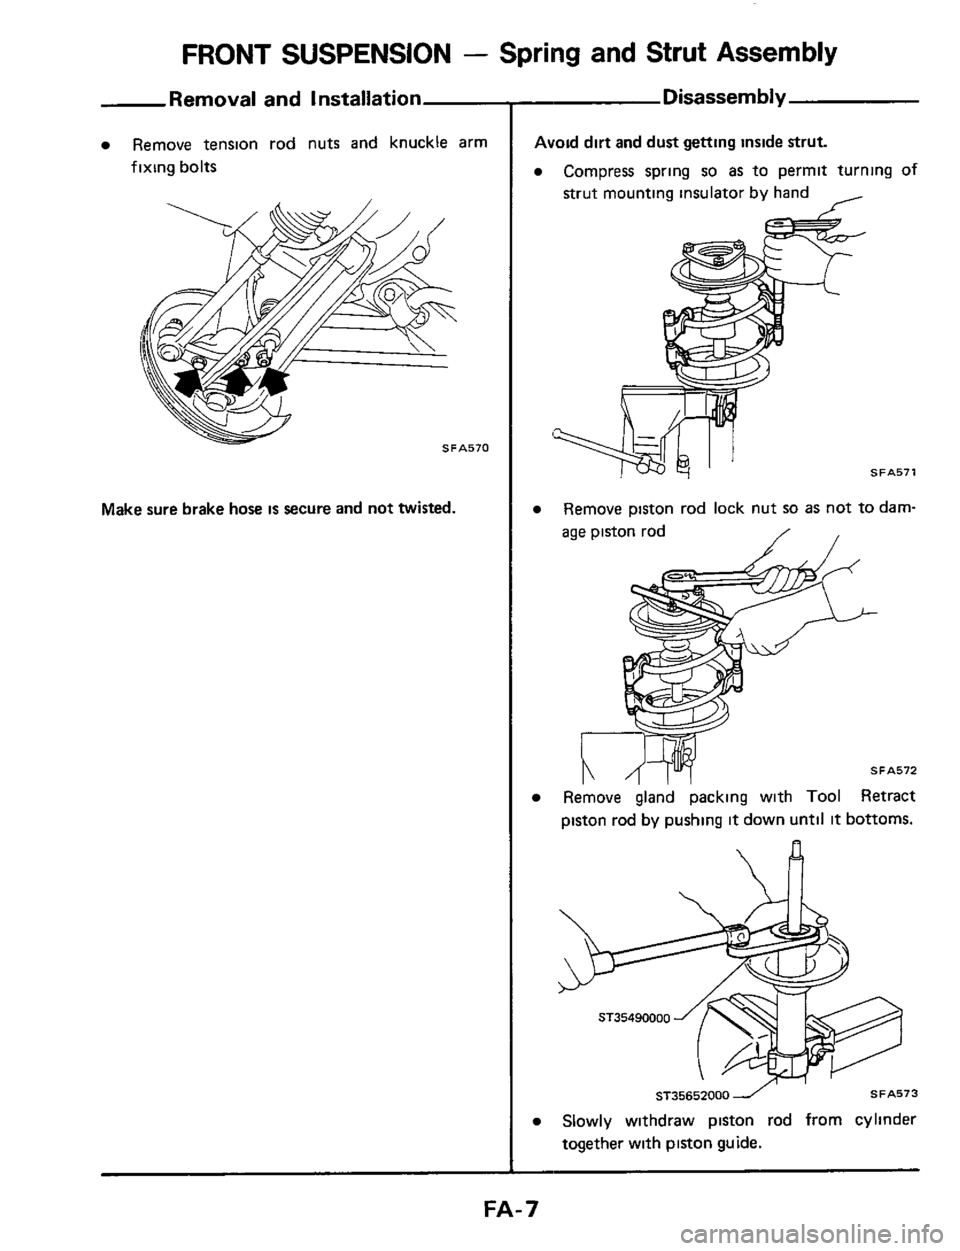 NISSAN 300ZX 1984 Z31 Front Suspension Workshop Manual, Page 7